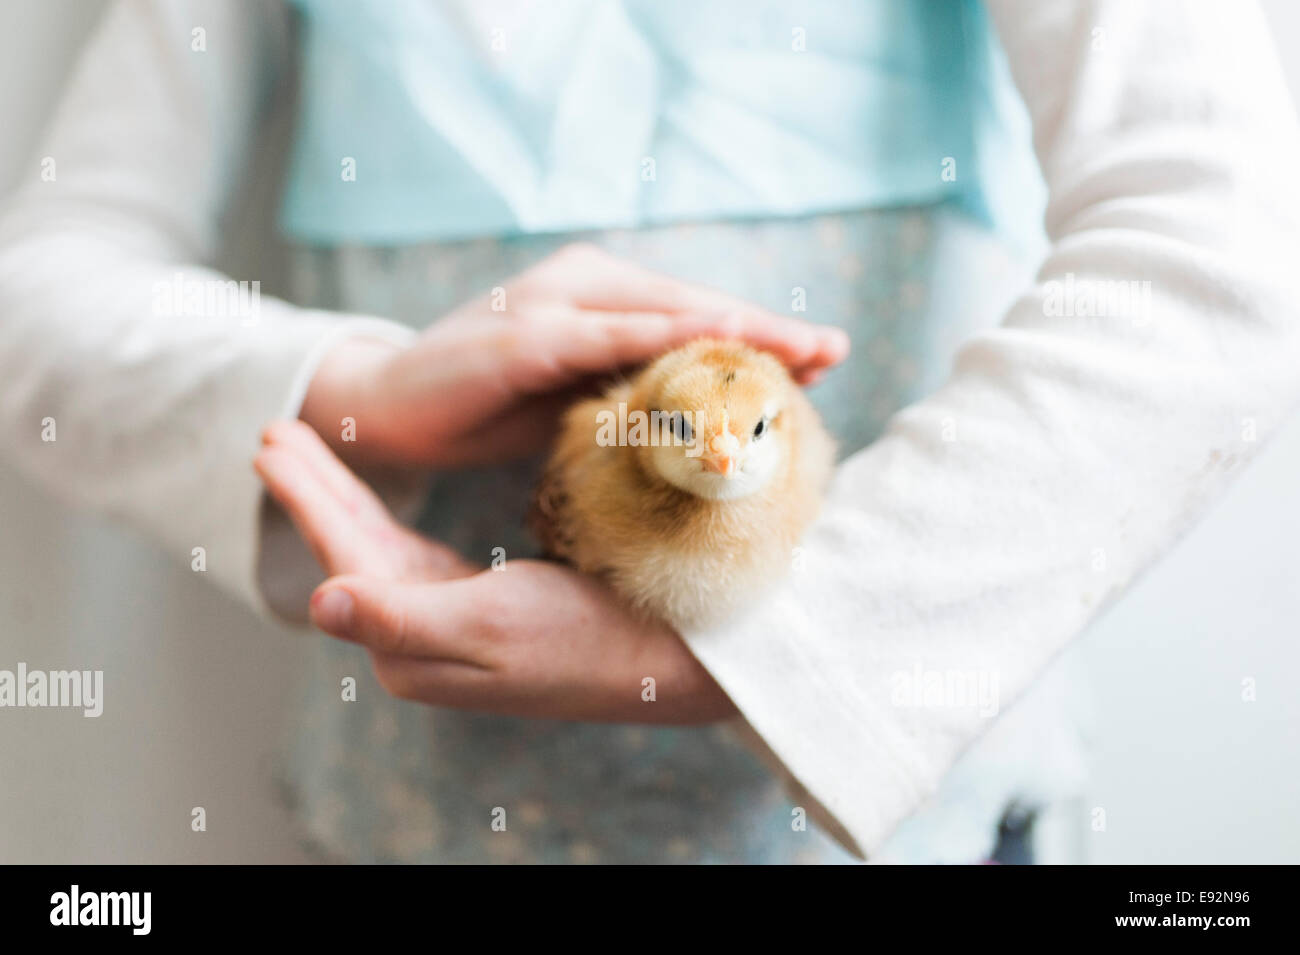 Young Girl's Hands Holding Young Chick - Stock Image